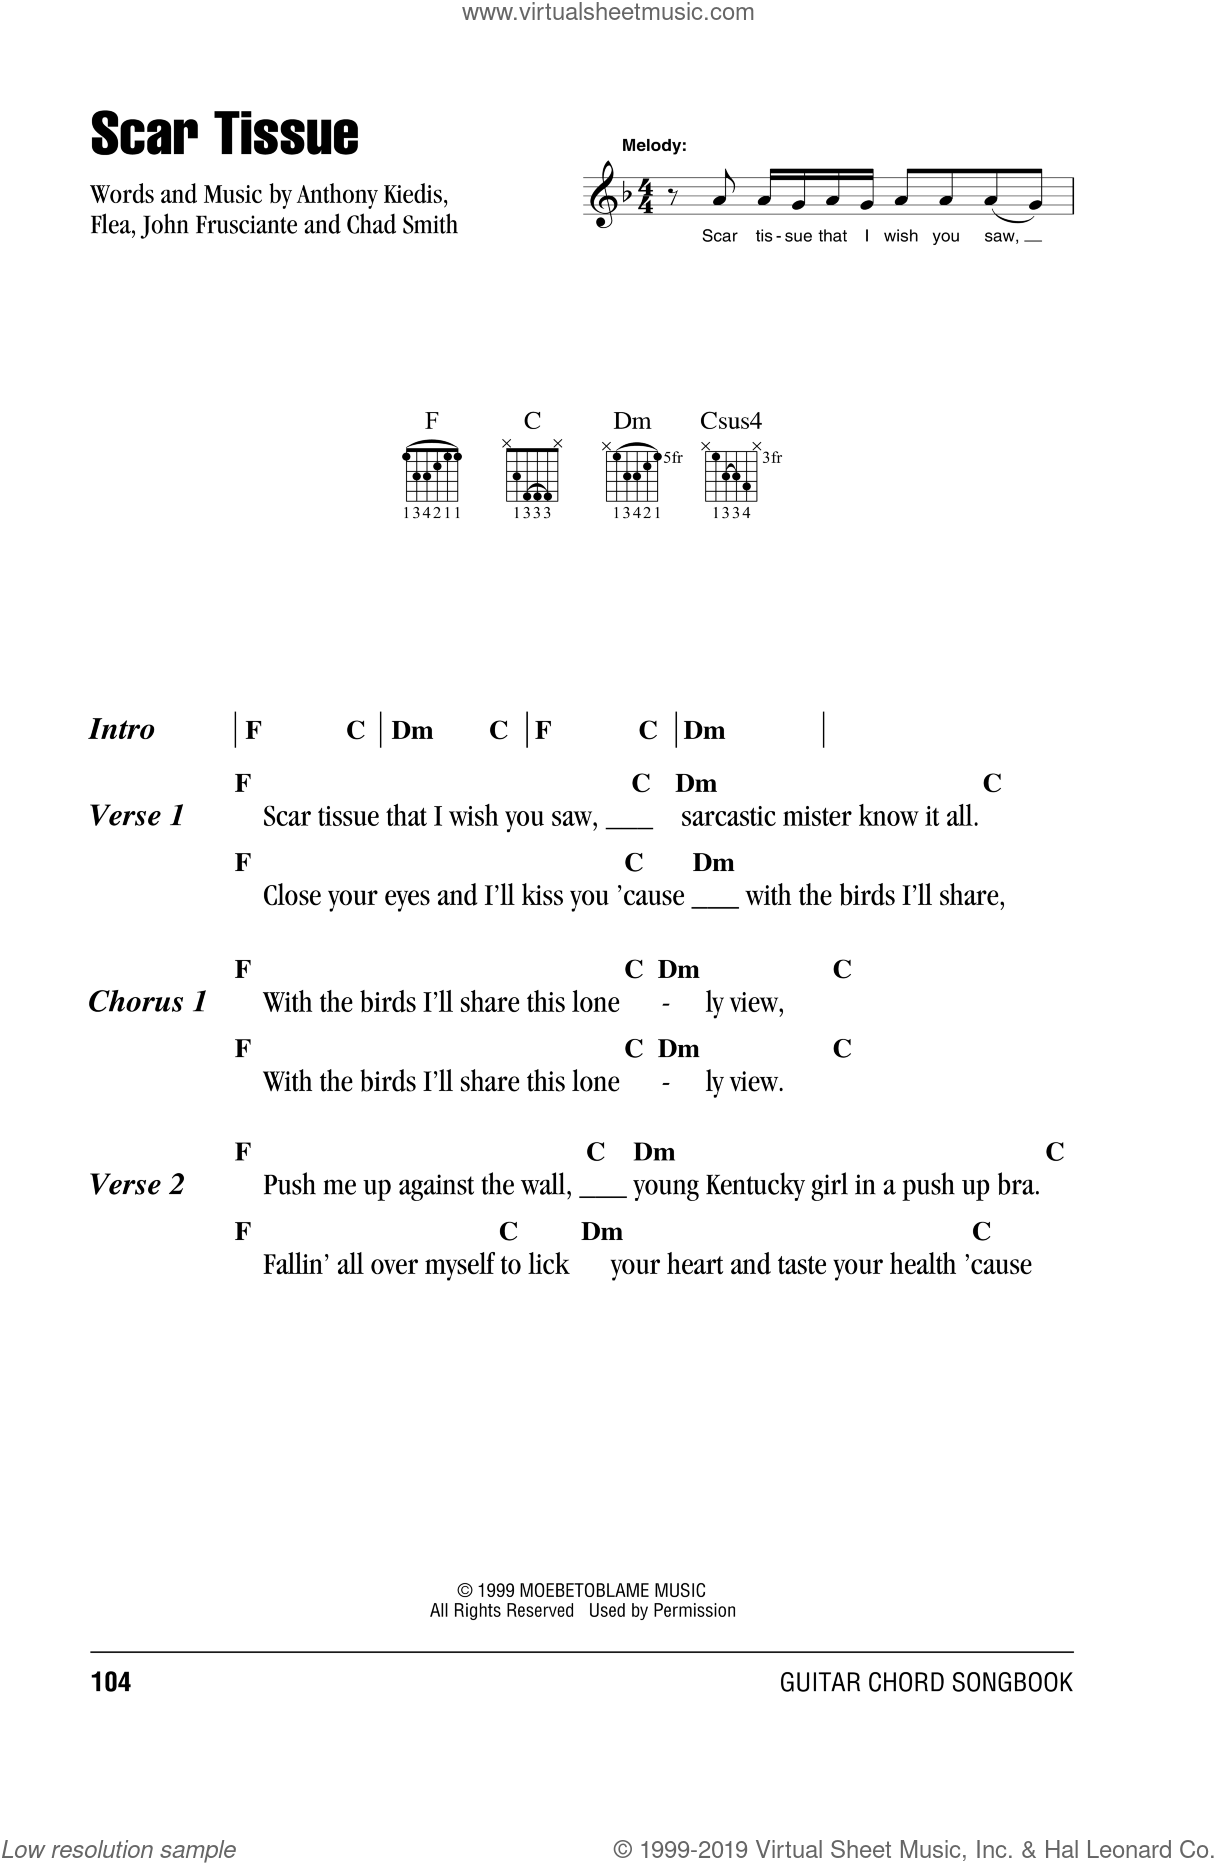 Scar Tissue sheet music for guitar (chords) by John Frusciante